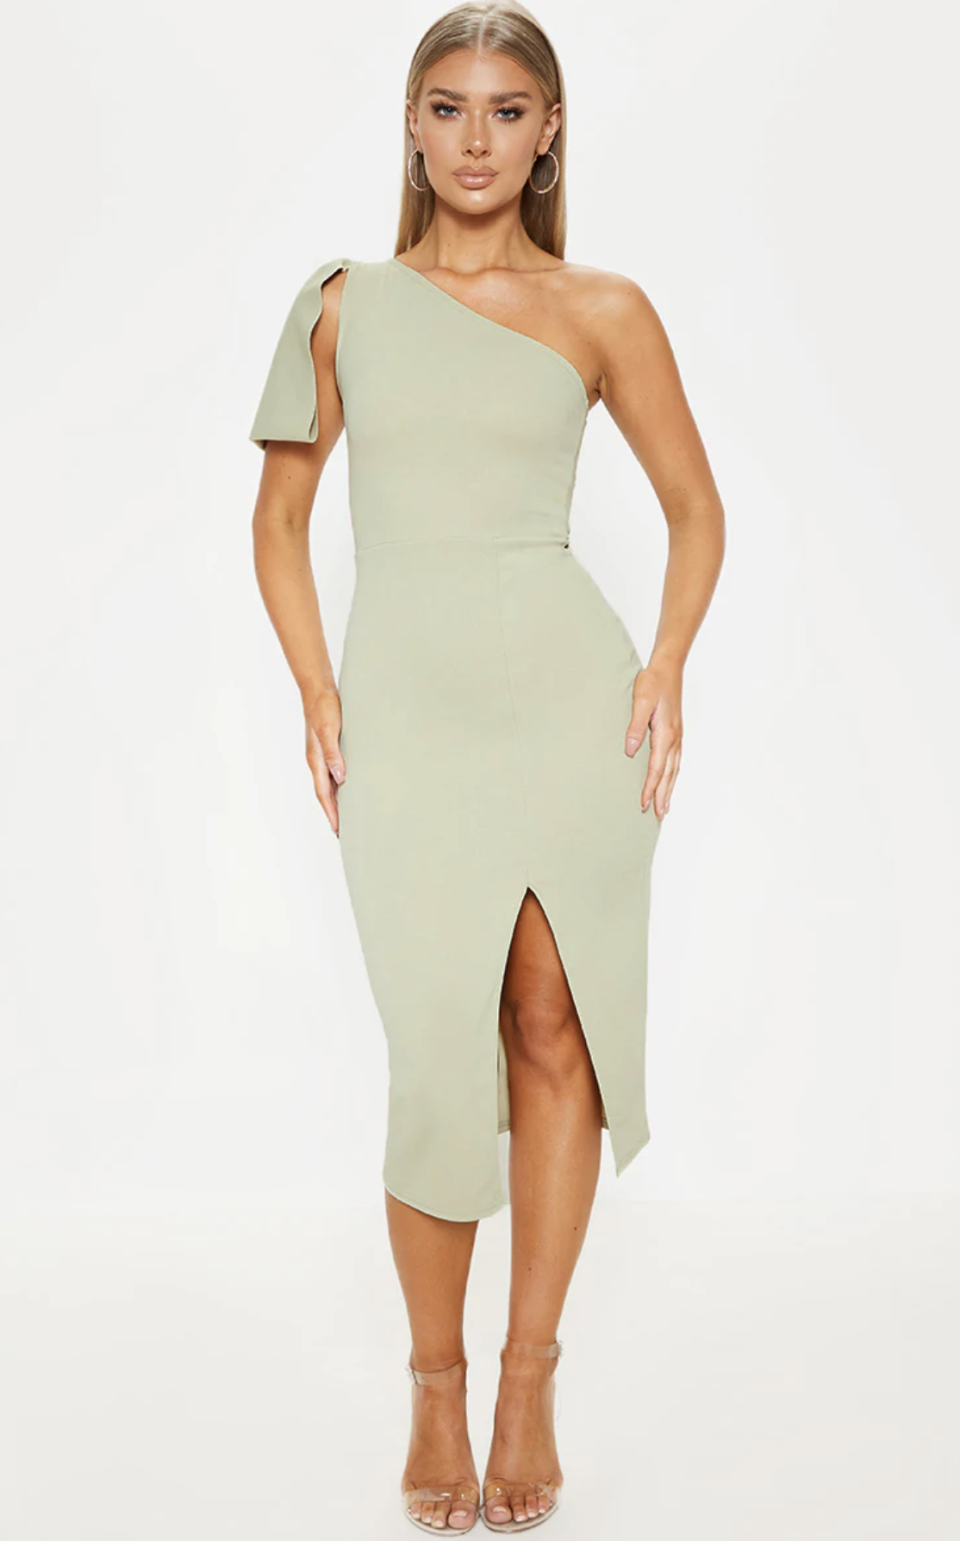 PrettyLittleThing One Shoulder Bow Detail Midi Dress in Sage Green (Photo via PrettyLittleThing)